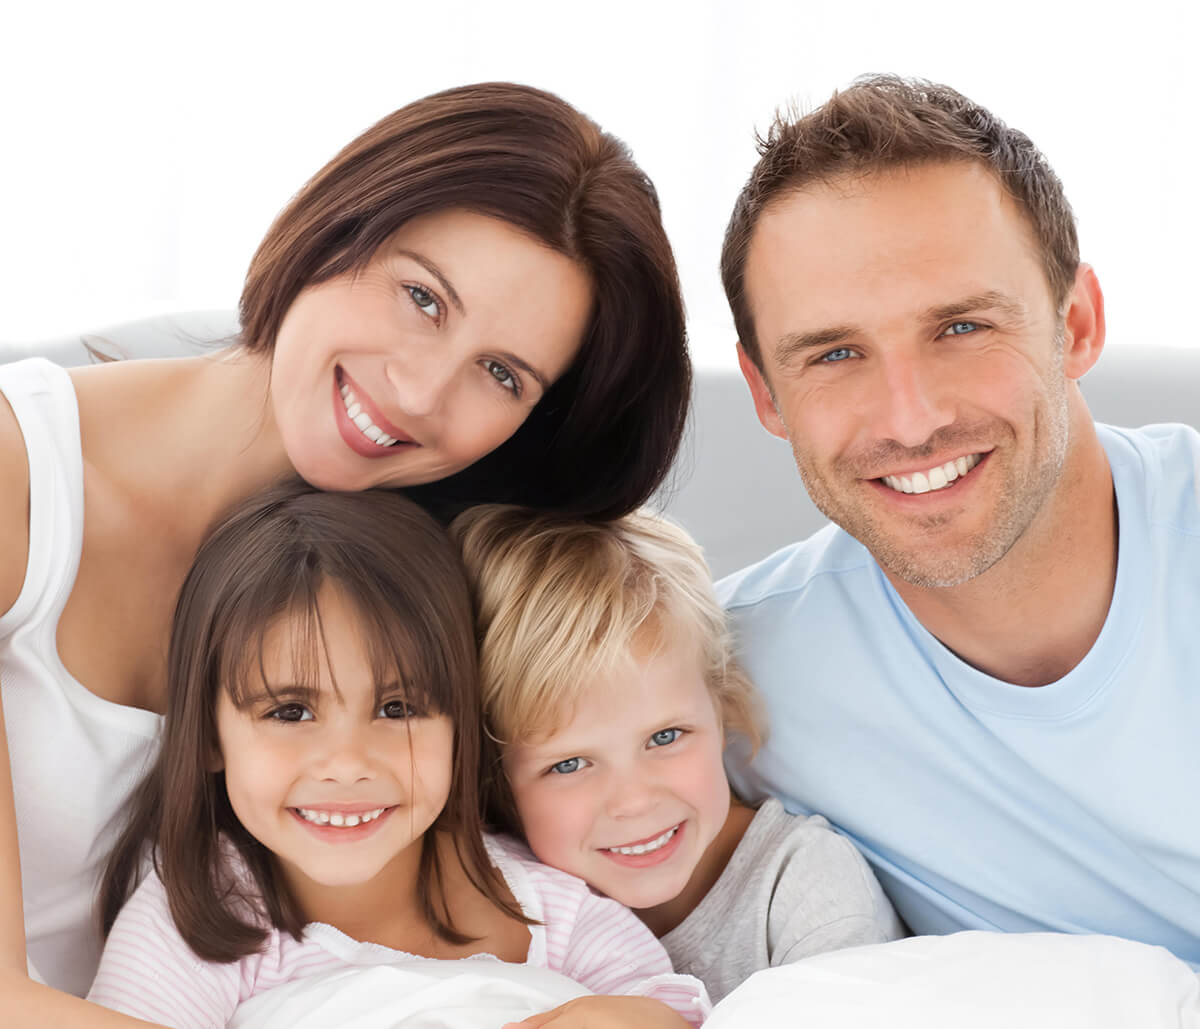 Where to Find Quality Family Dental Health Care in Scottsdale, AZ Area